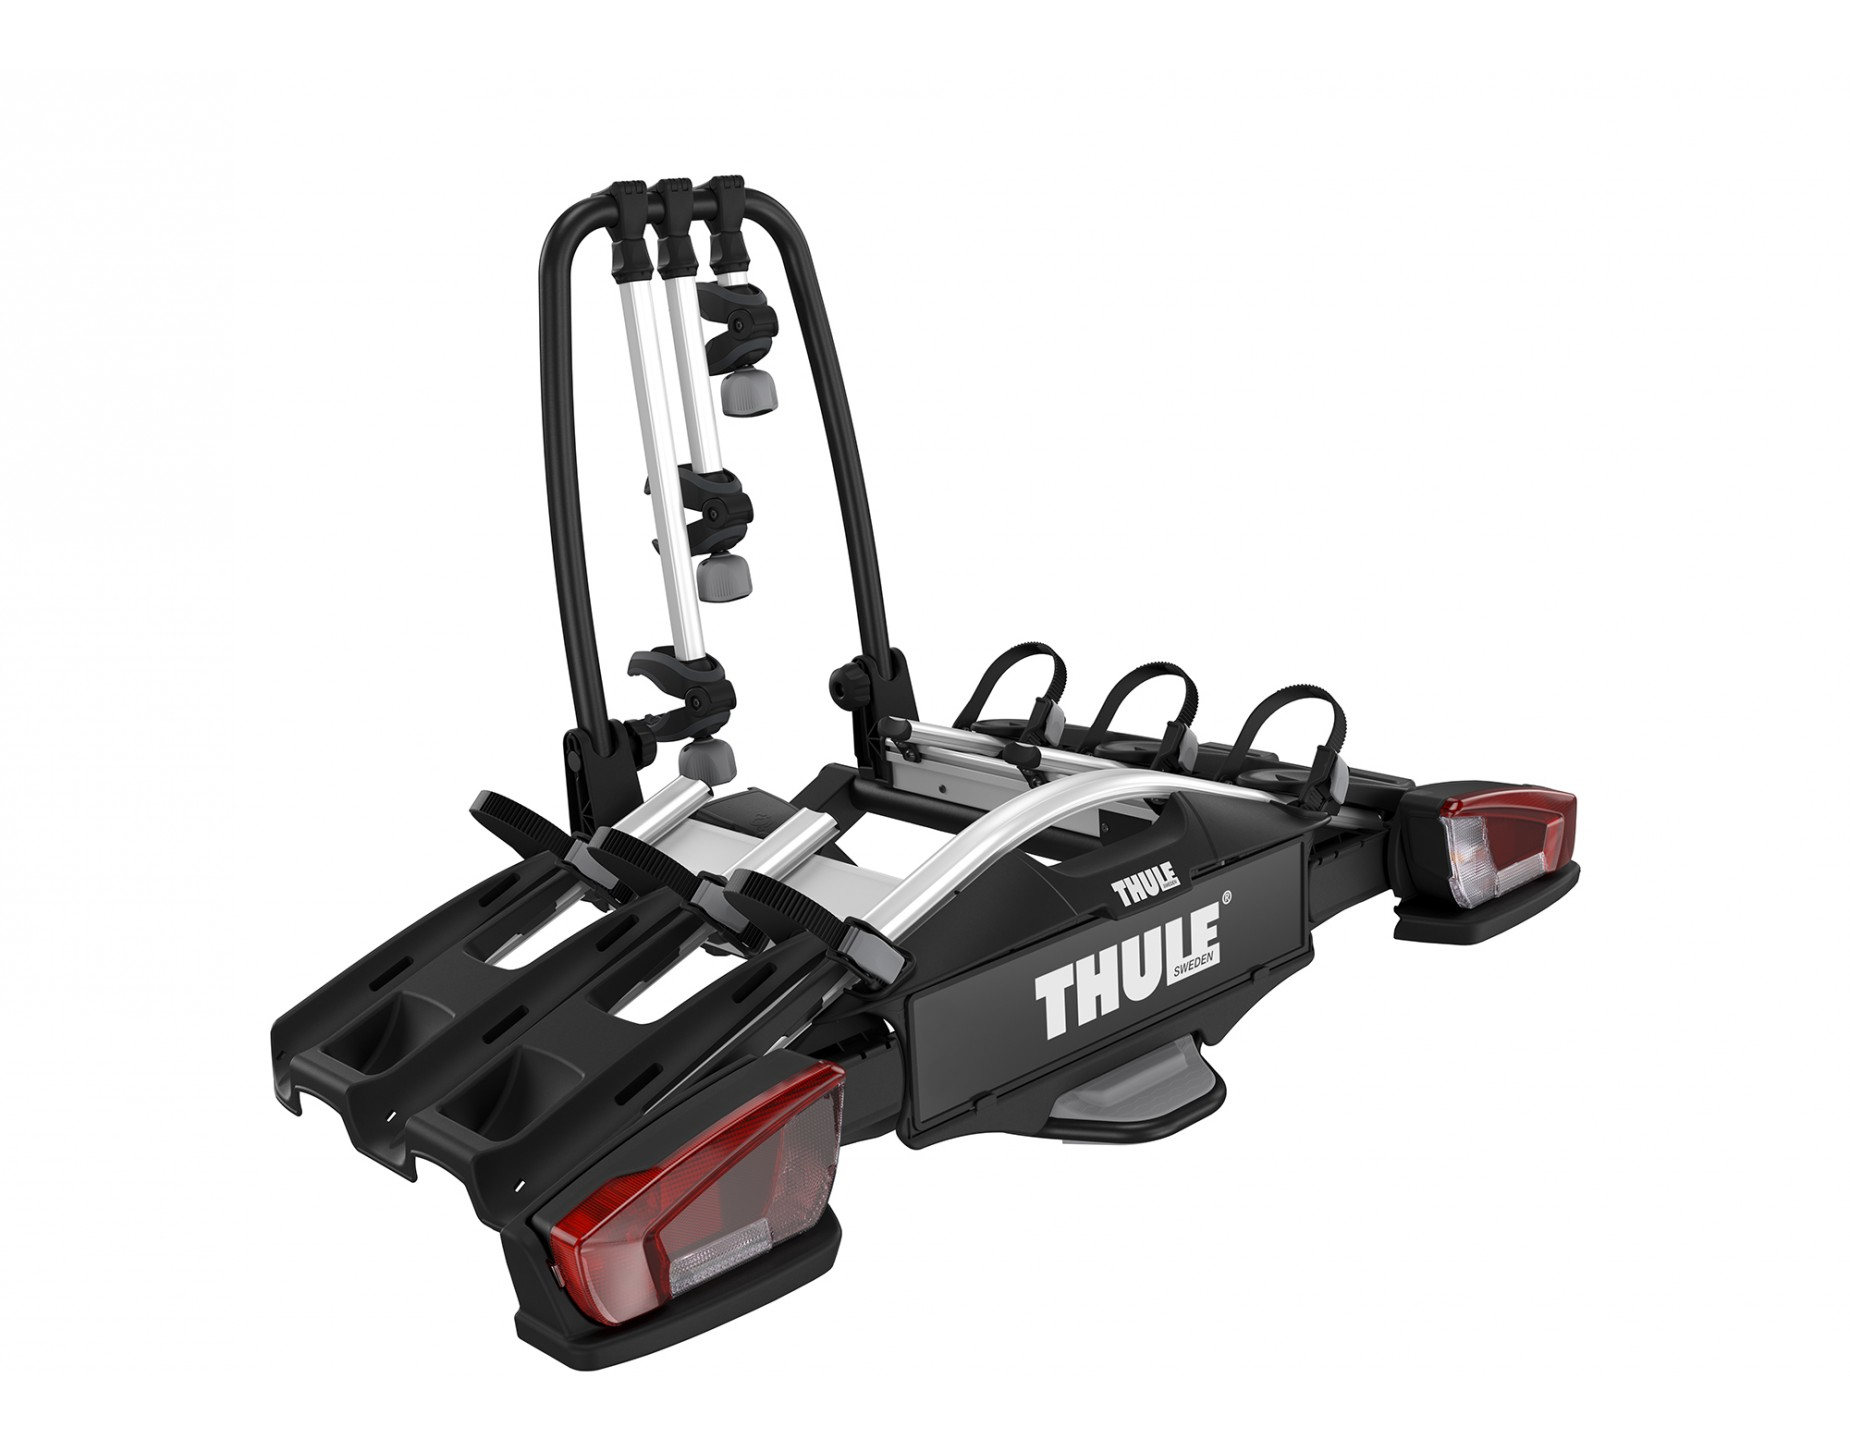 thule velocompact 926 bike rack everything you need rose bikes. Black Bedroom Furniture Sets. Home Design Ideas